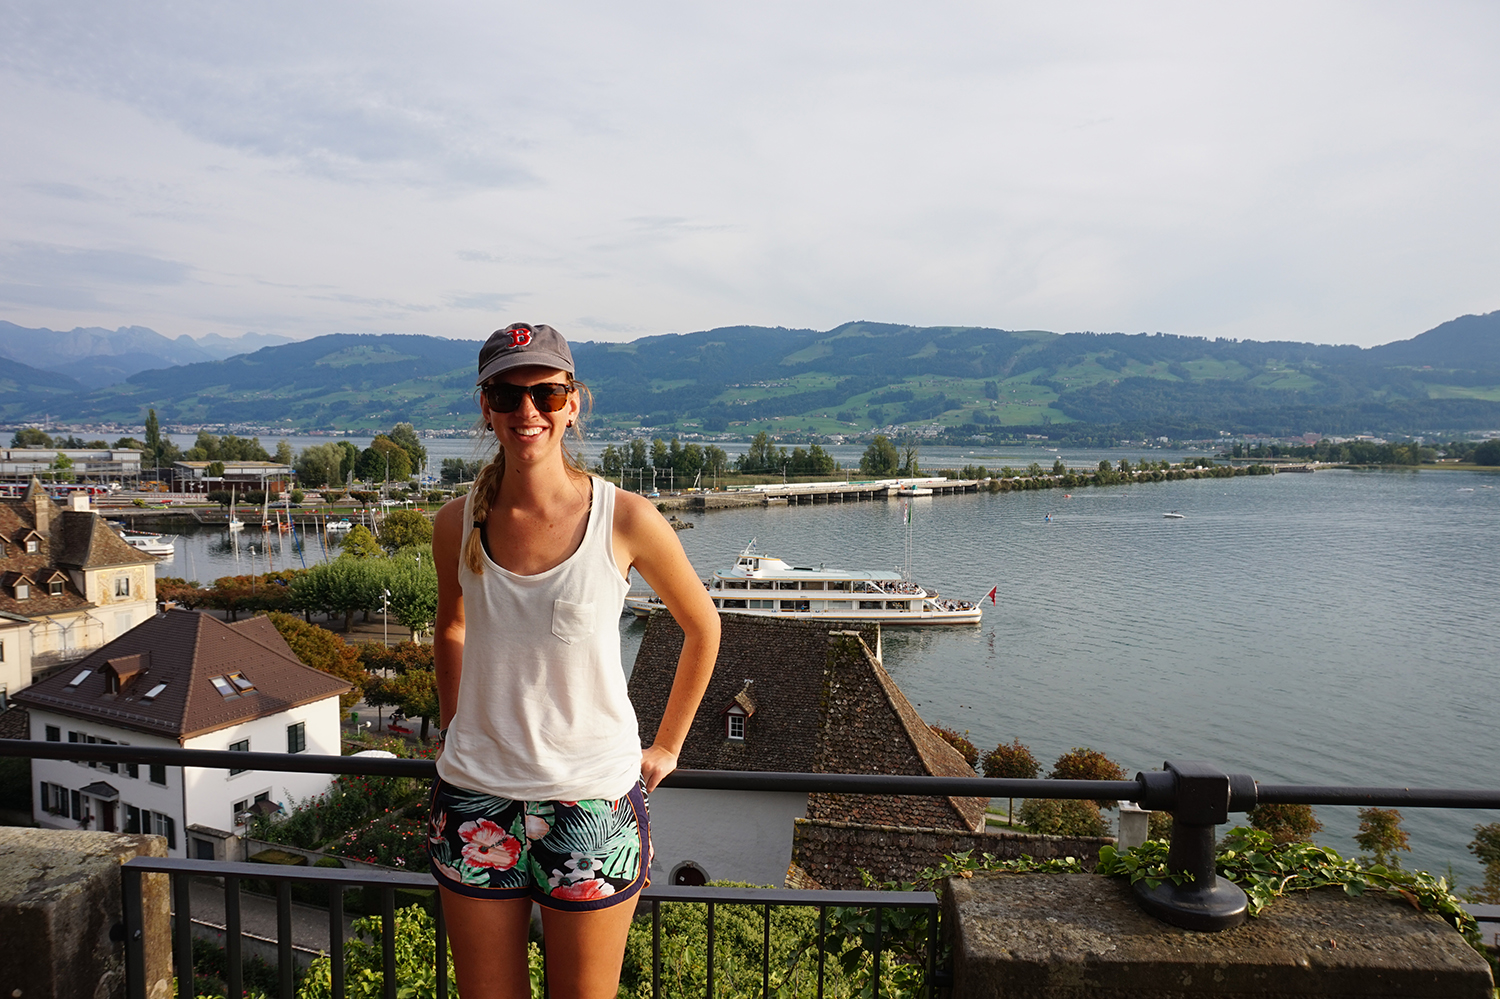 A view looking south at Lake Zurich, with the alps in the background.